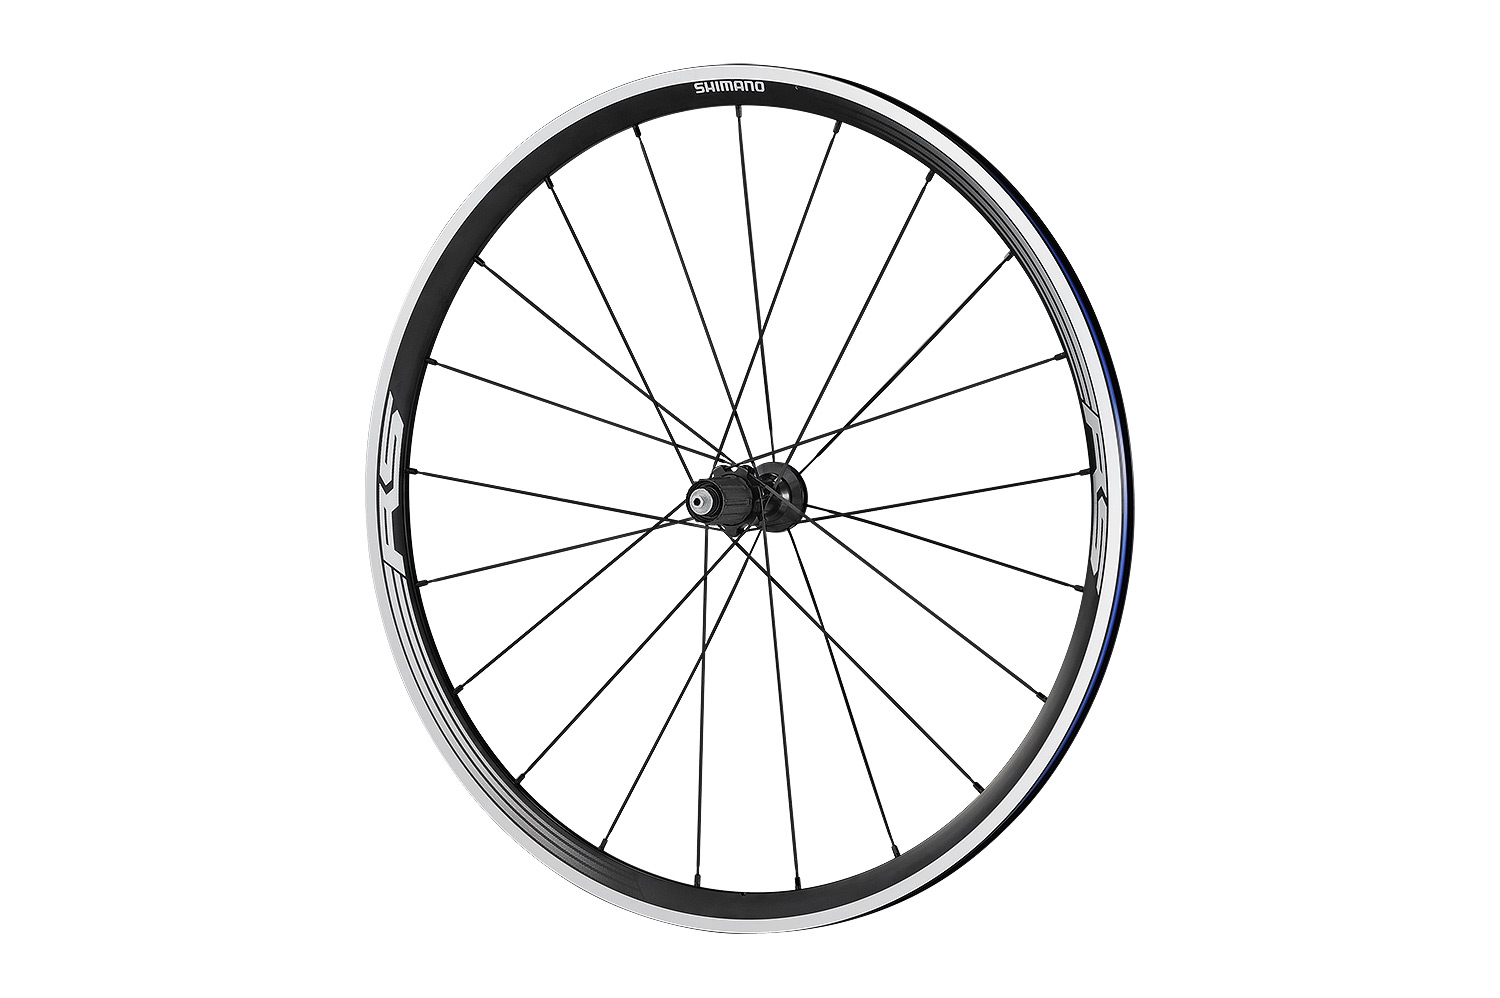 Shimano Updates Entry Level 11 Speed Wheels with the RS330